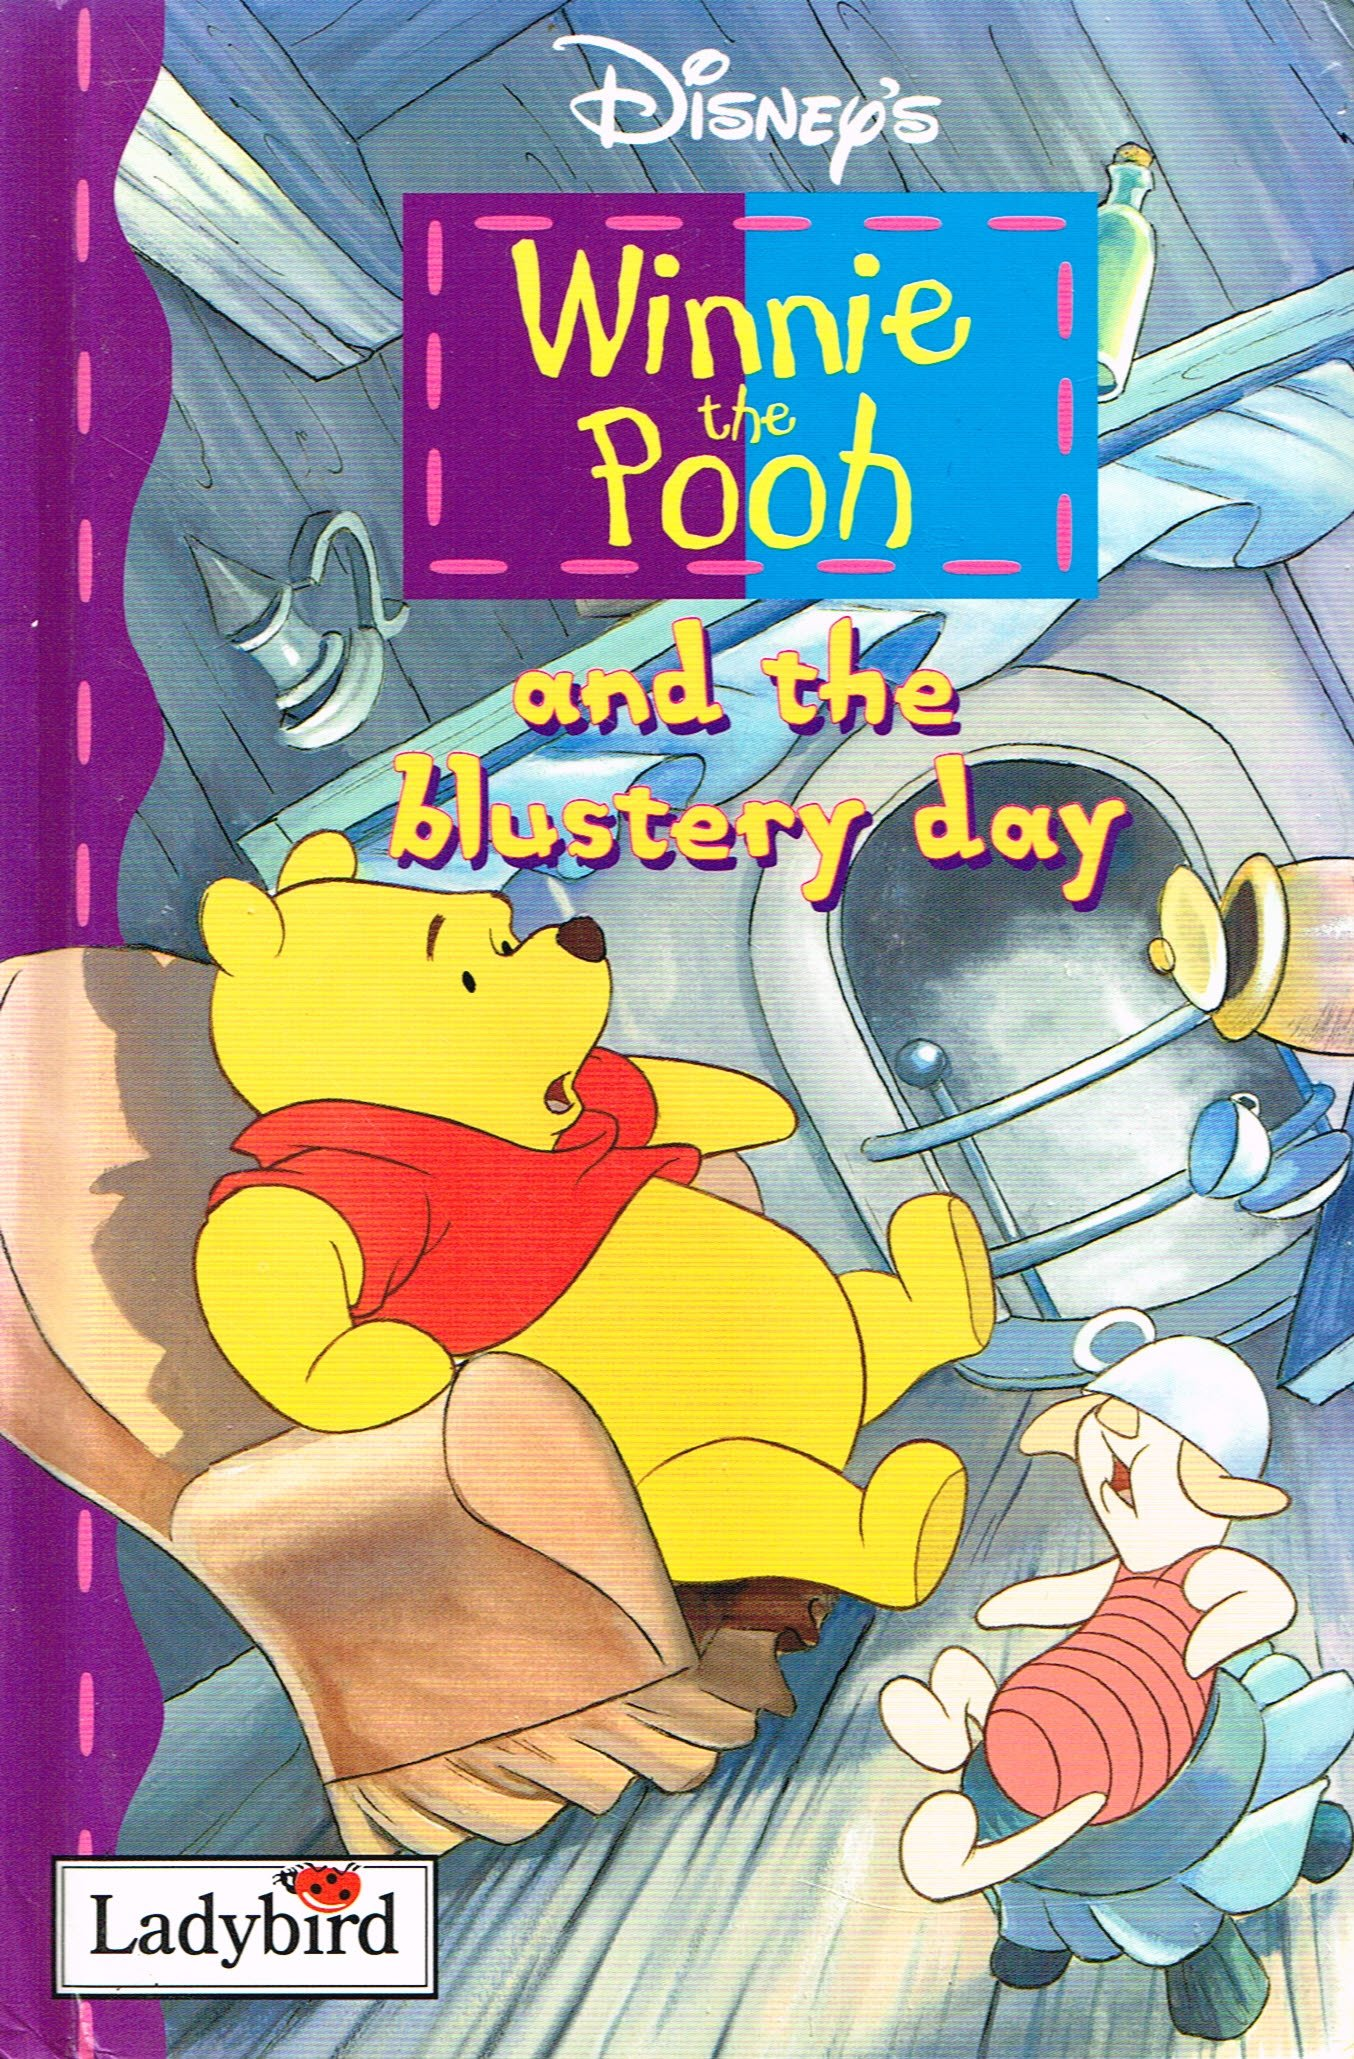 winnie the pooh blustery day full movie